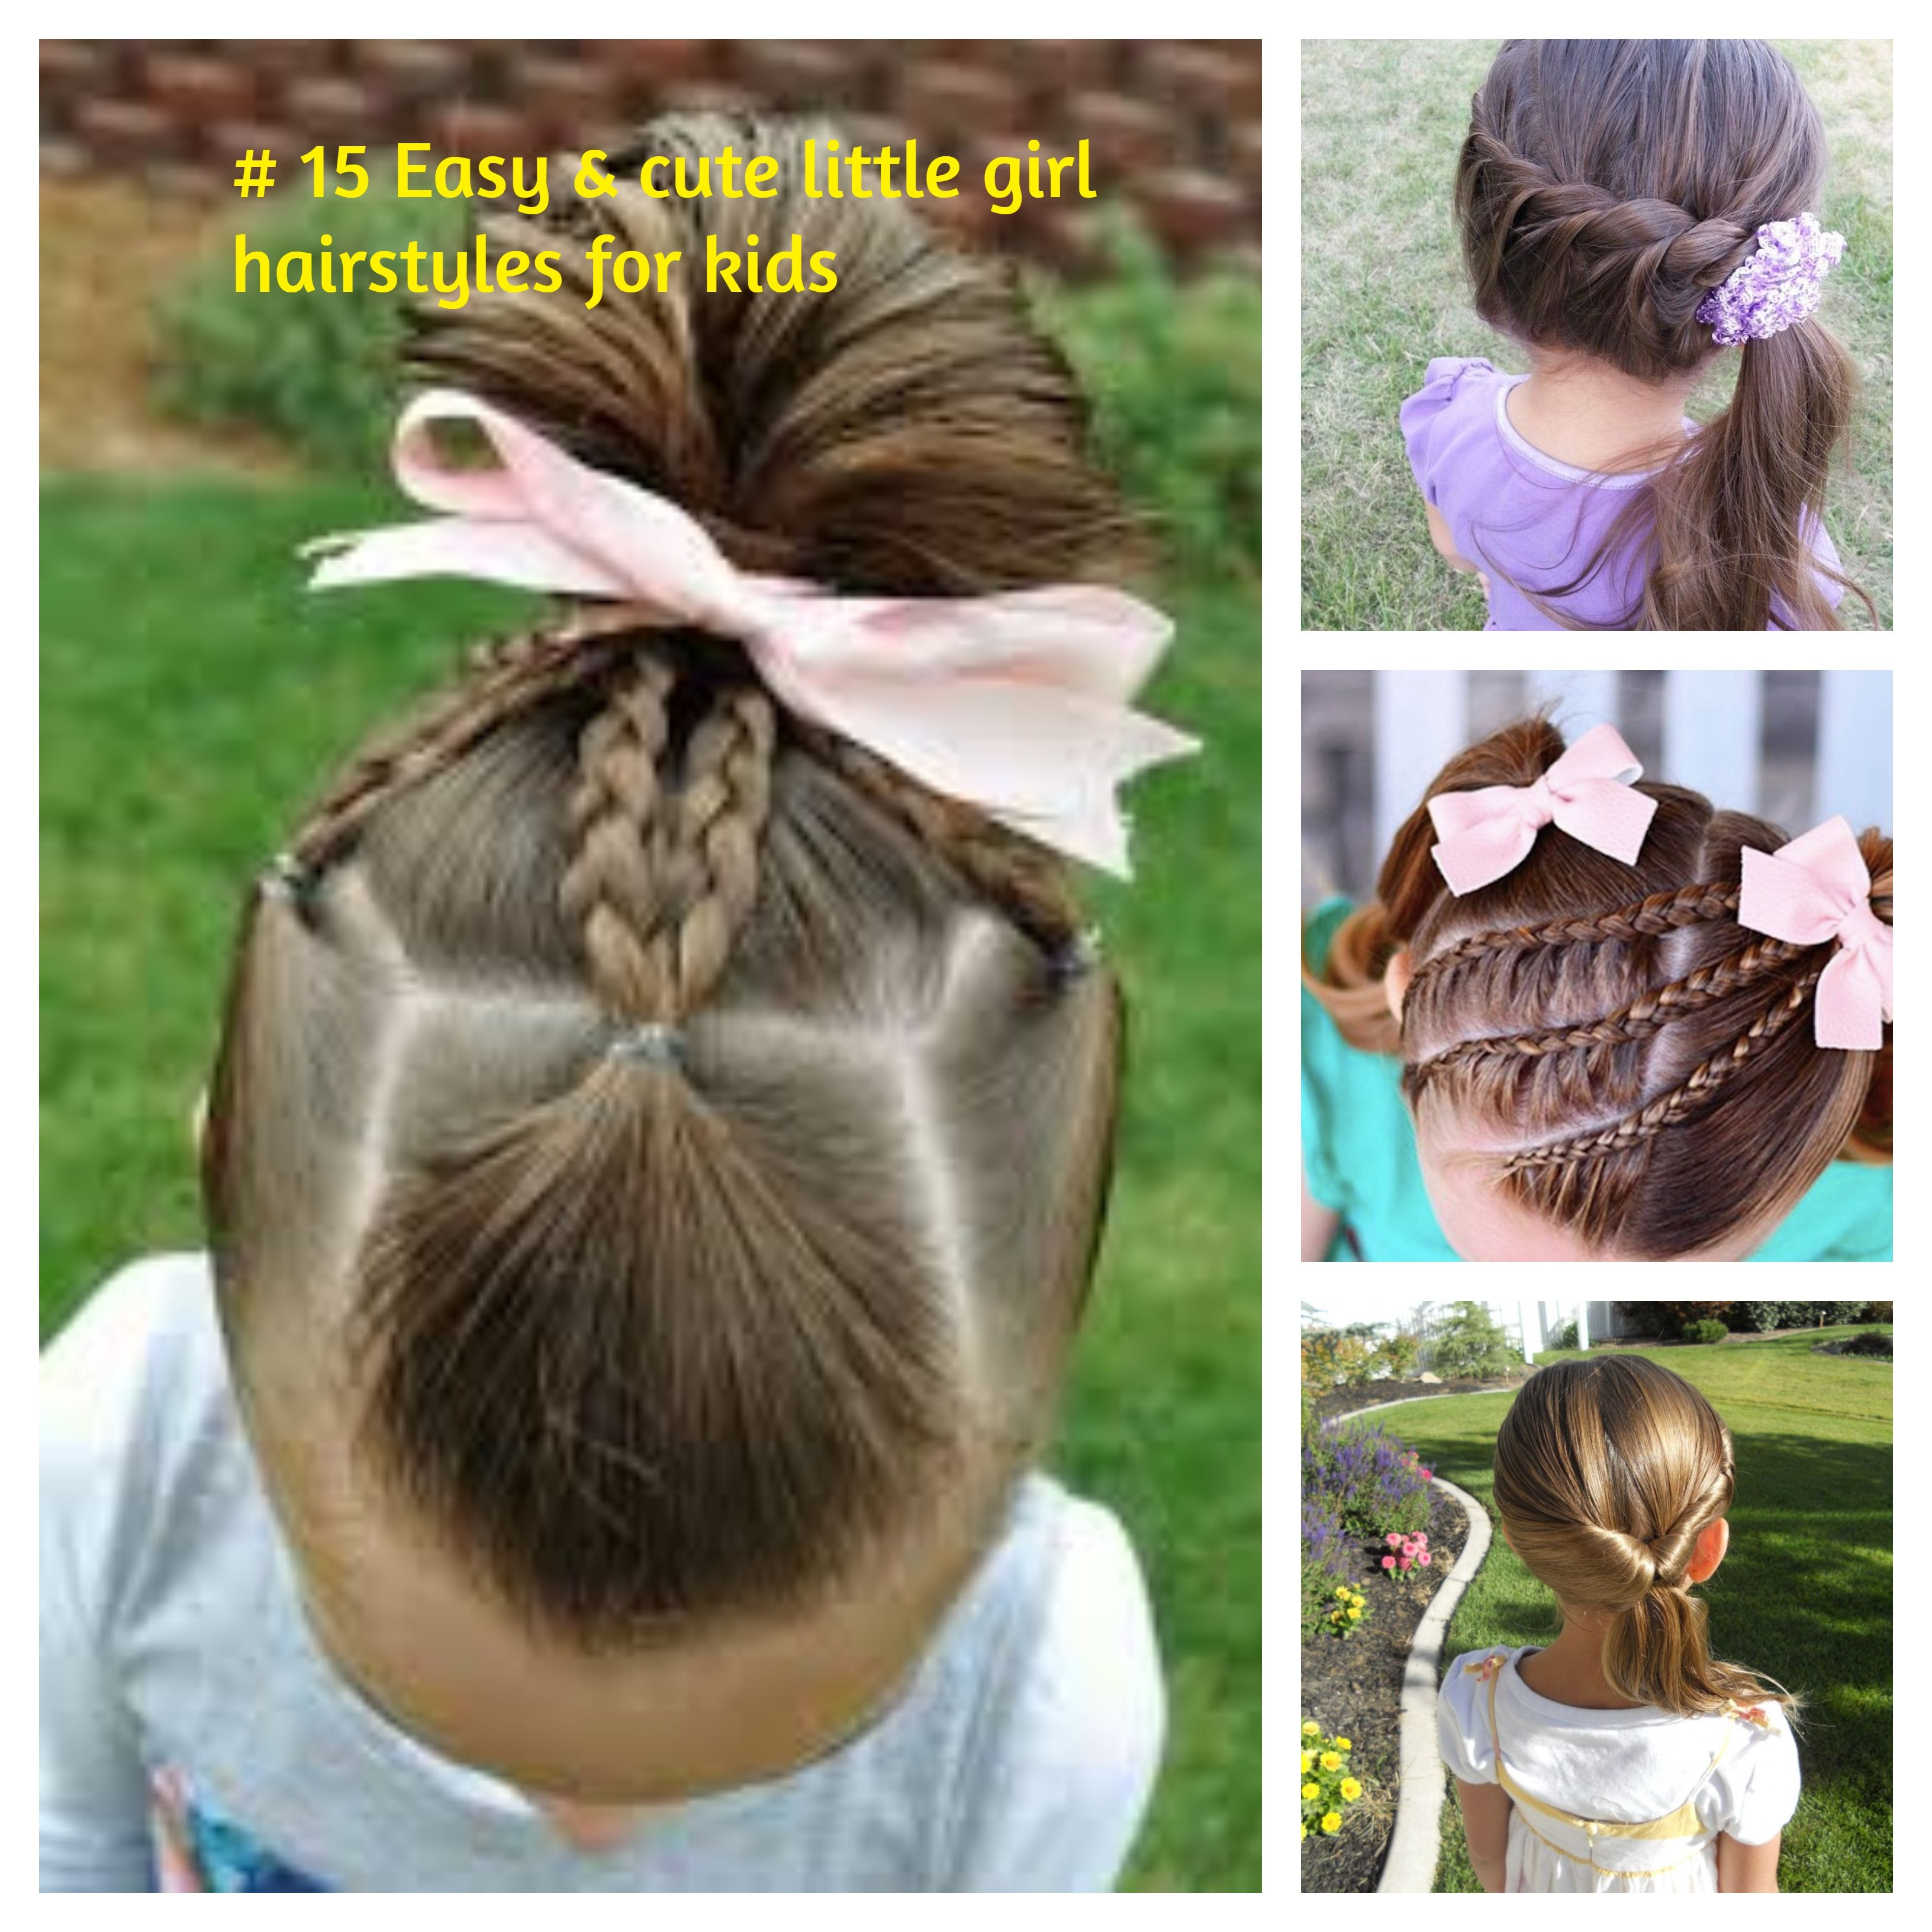 15 Easy And Cute Little Girl Hairstyle For Kids Simple Little Girl Hairstyle For Kids B Little Girl Hairstyles Cute Little Girl Hairstyles Kids Hairstyles